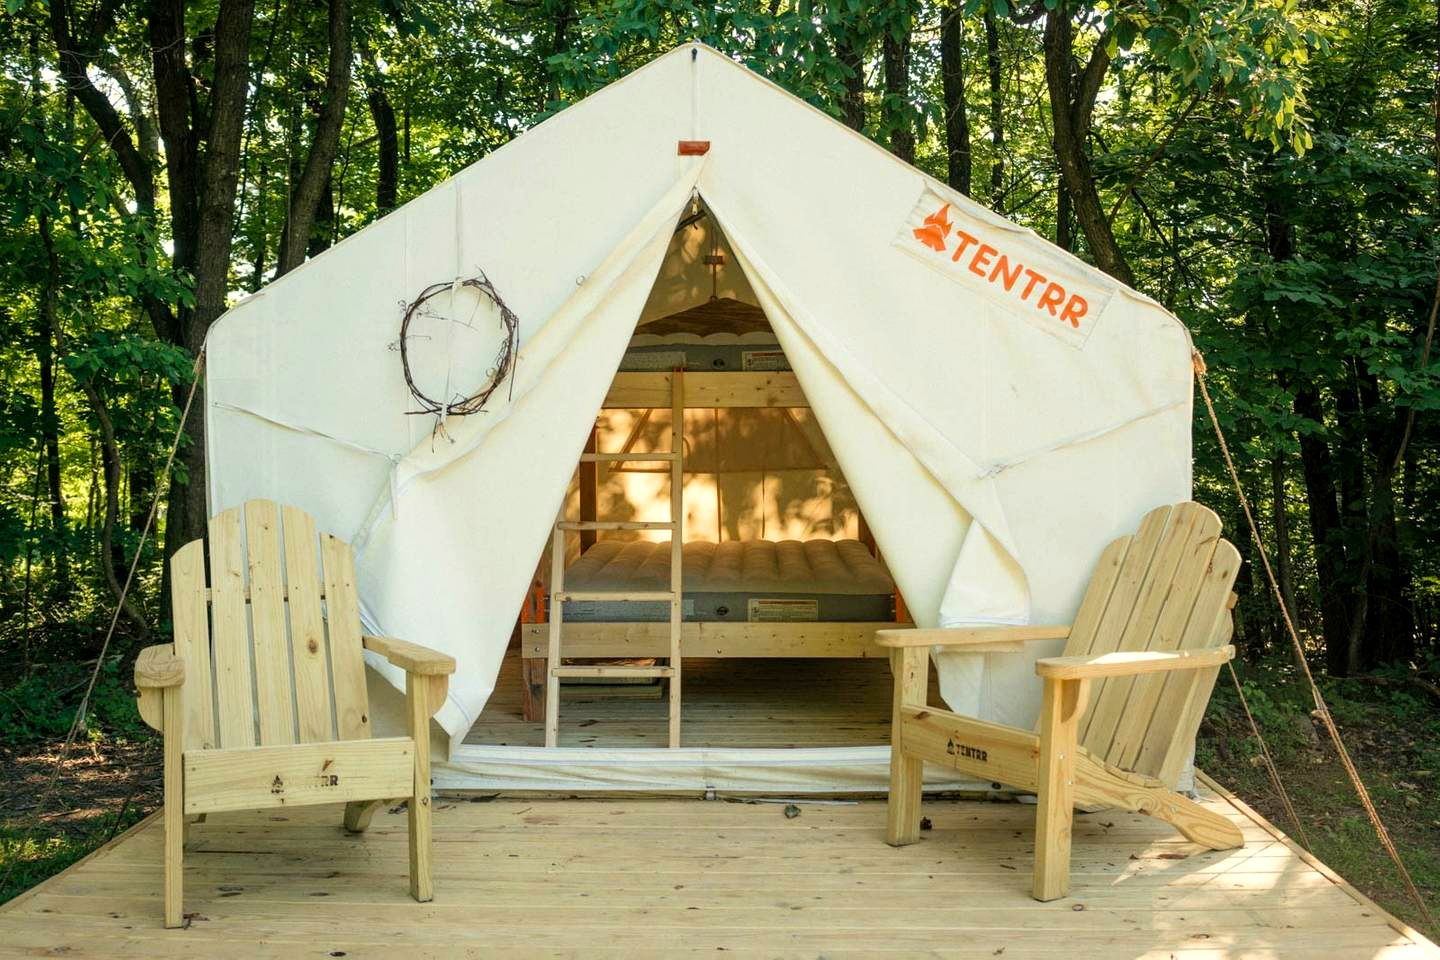 Tented Cabins (Aspers, Pennsylvania, United States)